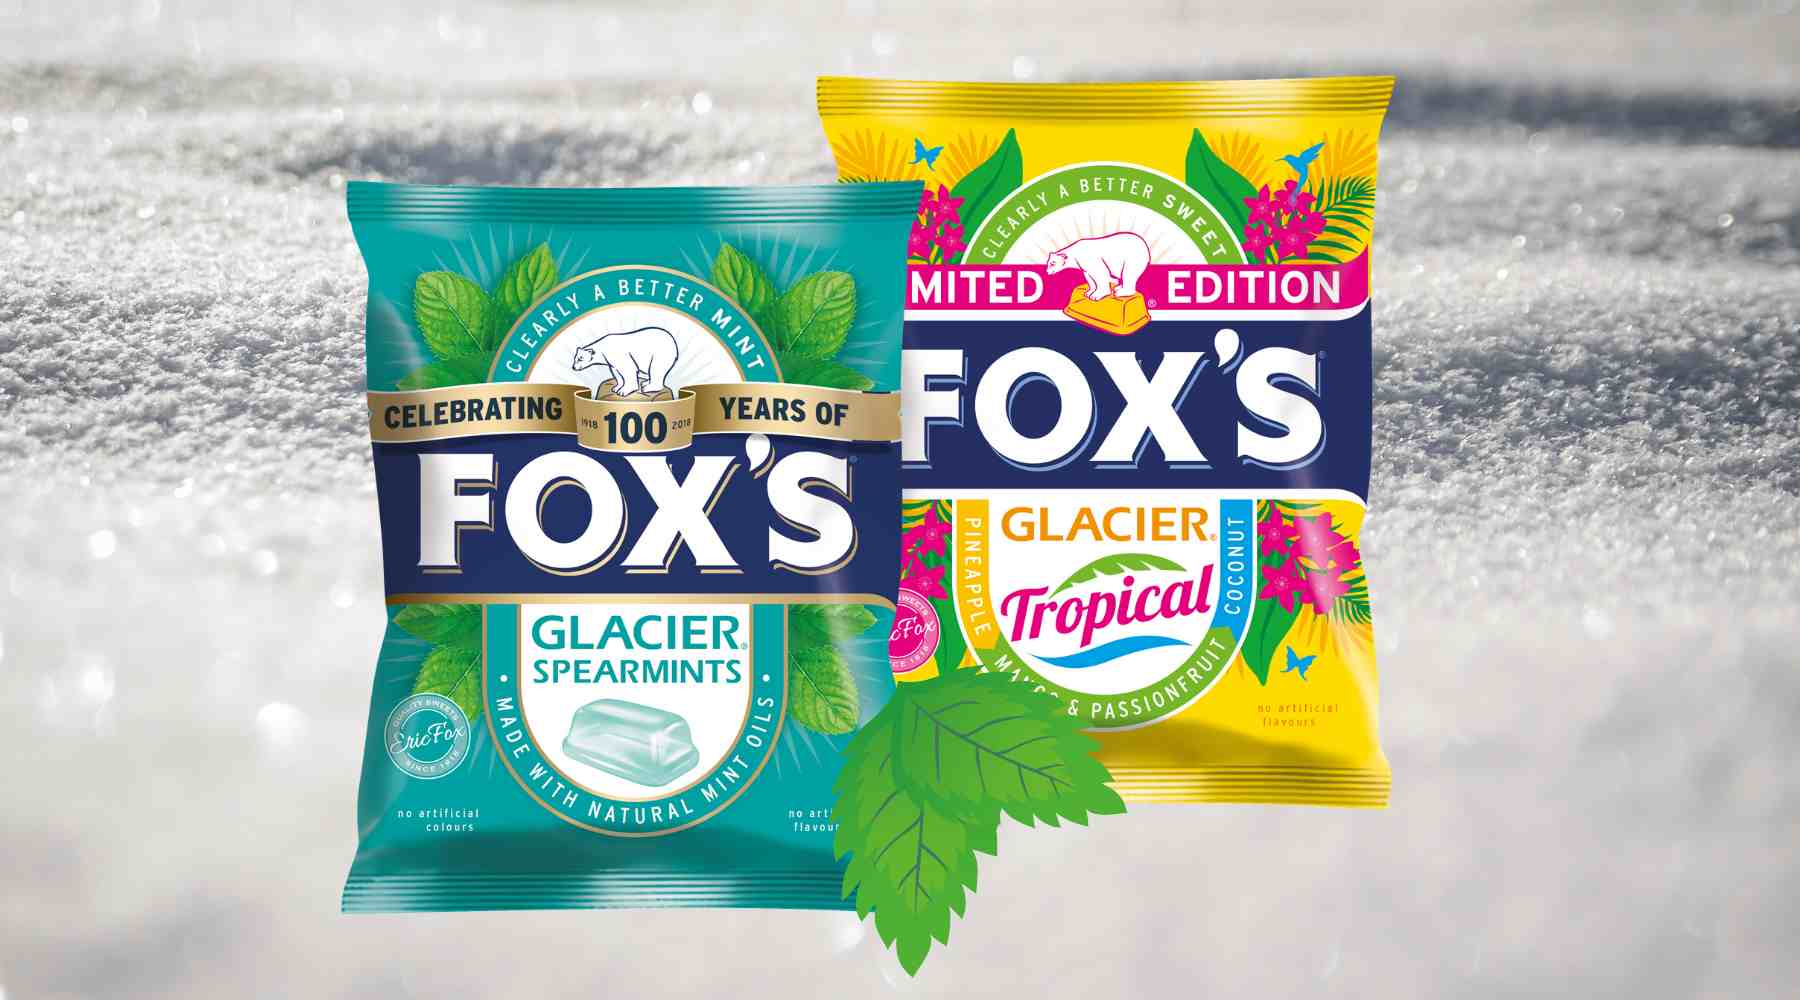 Miller Distributors Ltd appointed Local Distributor for Fox's